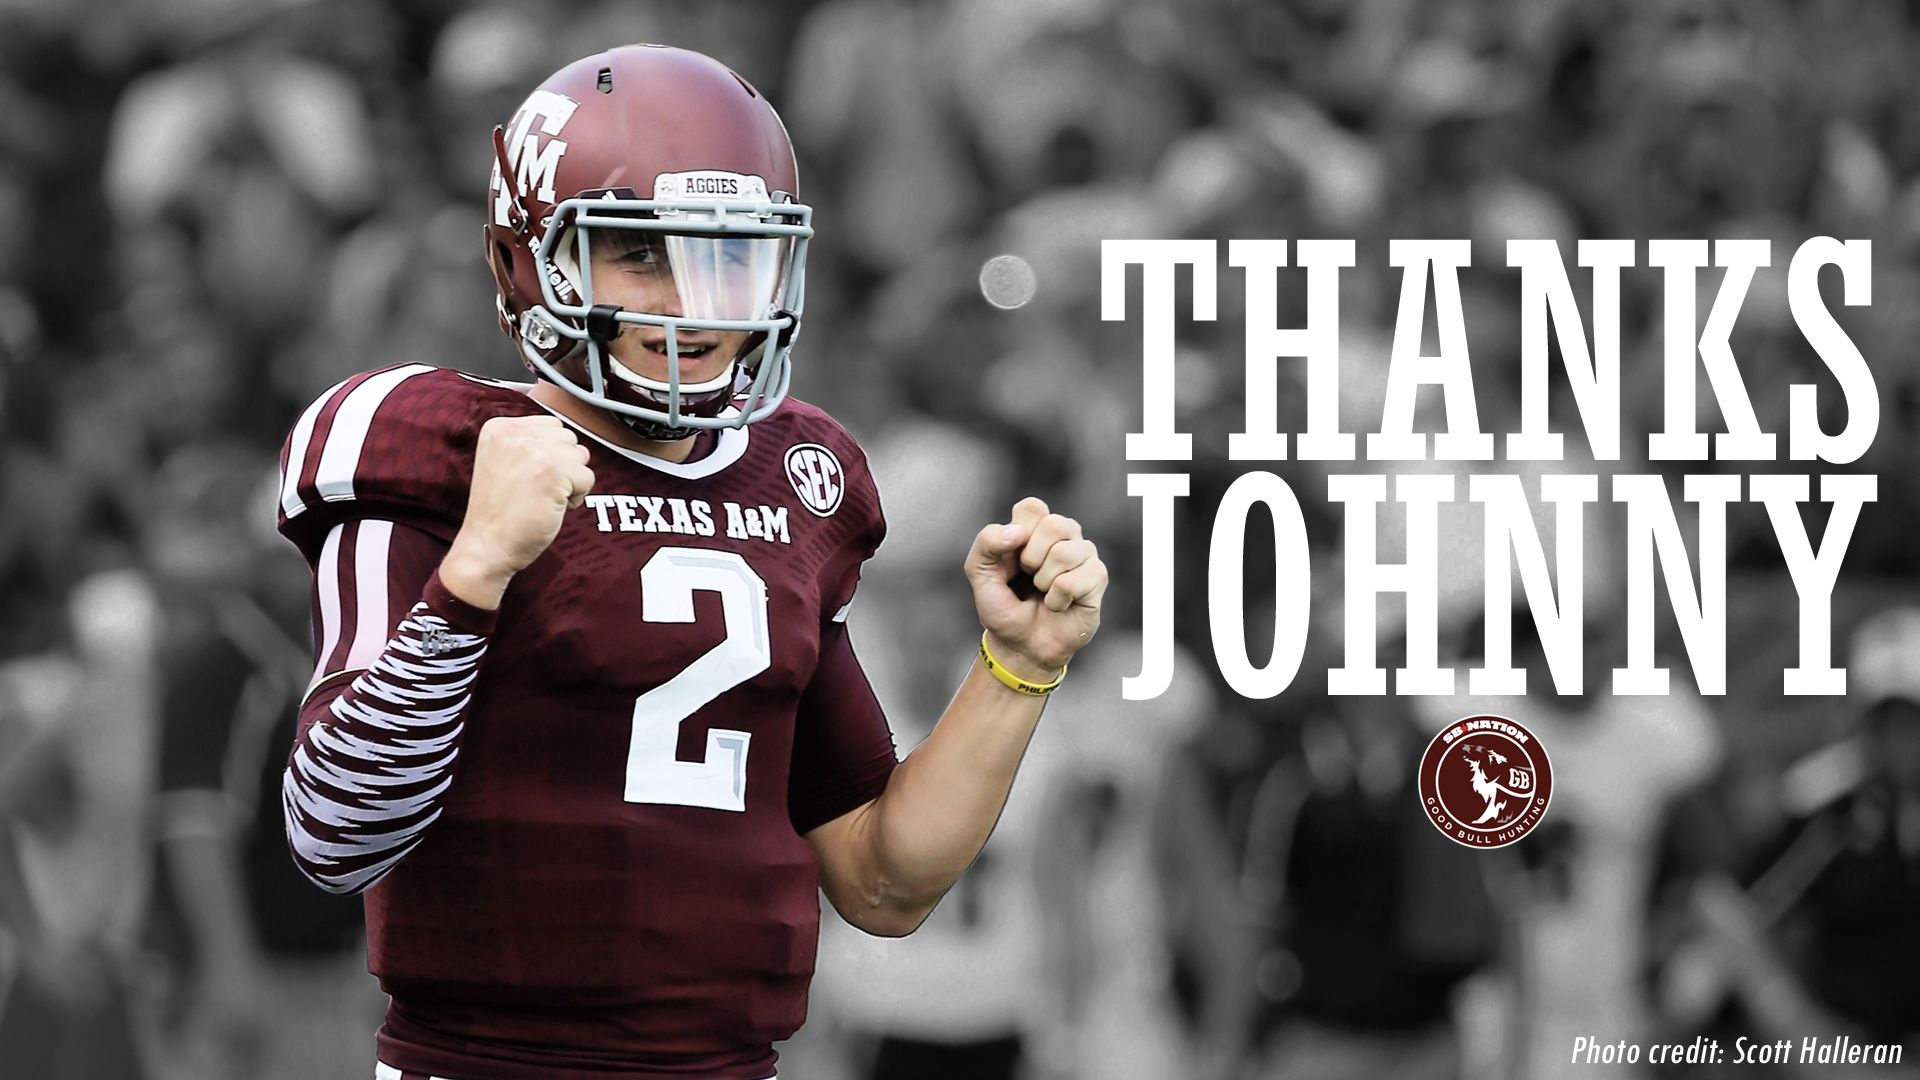 Pin by TTJPFF Shelby on Texas A&M Texas a&m university